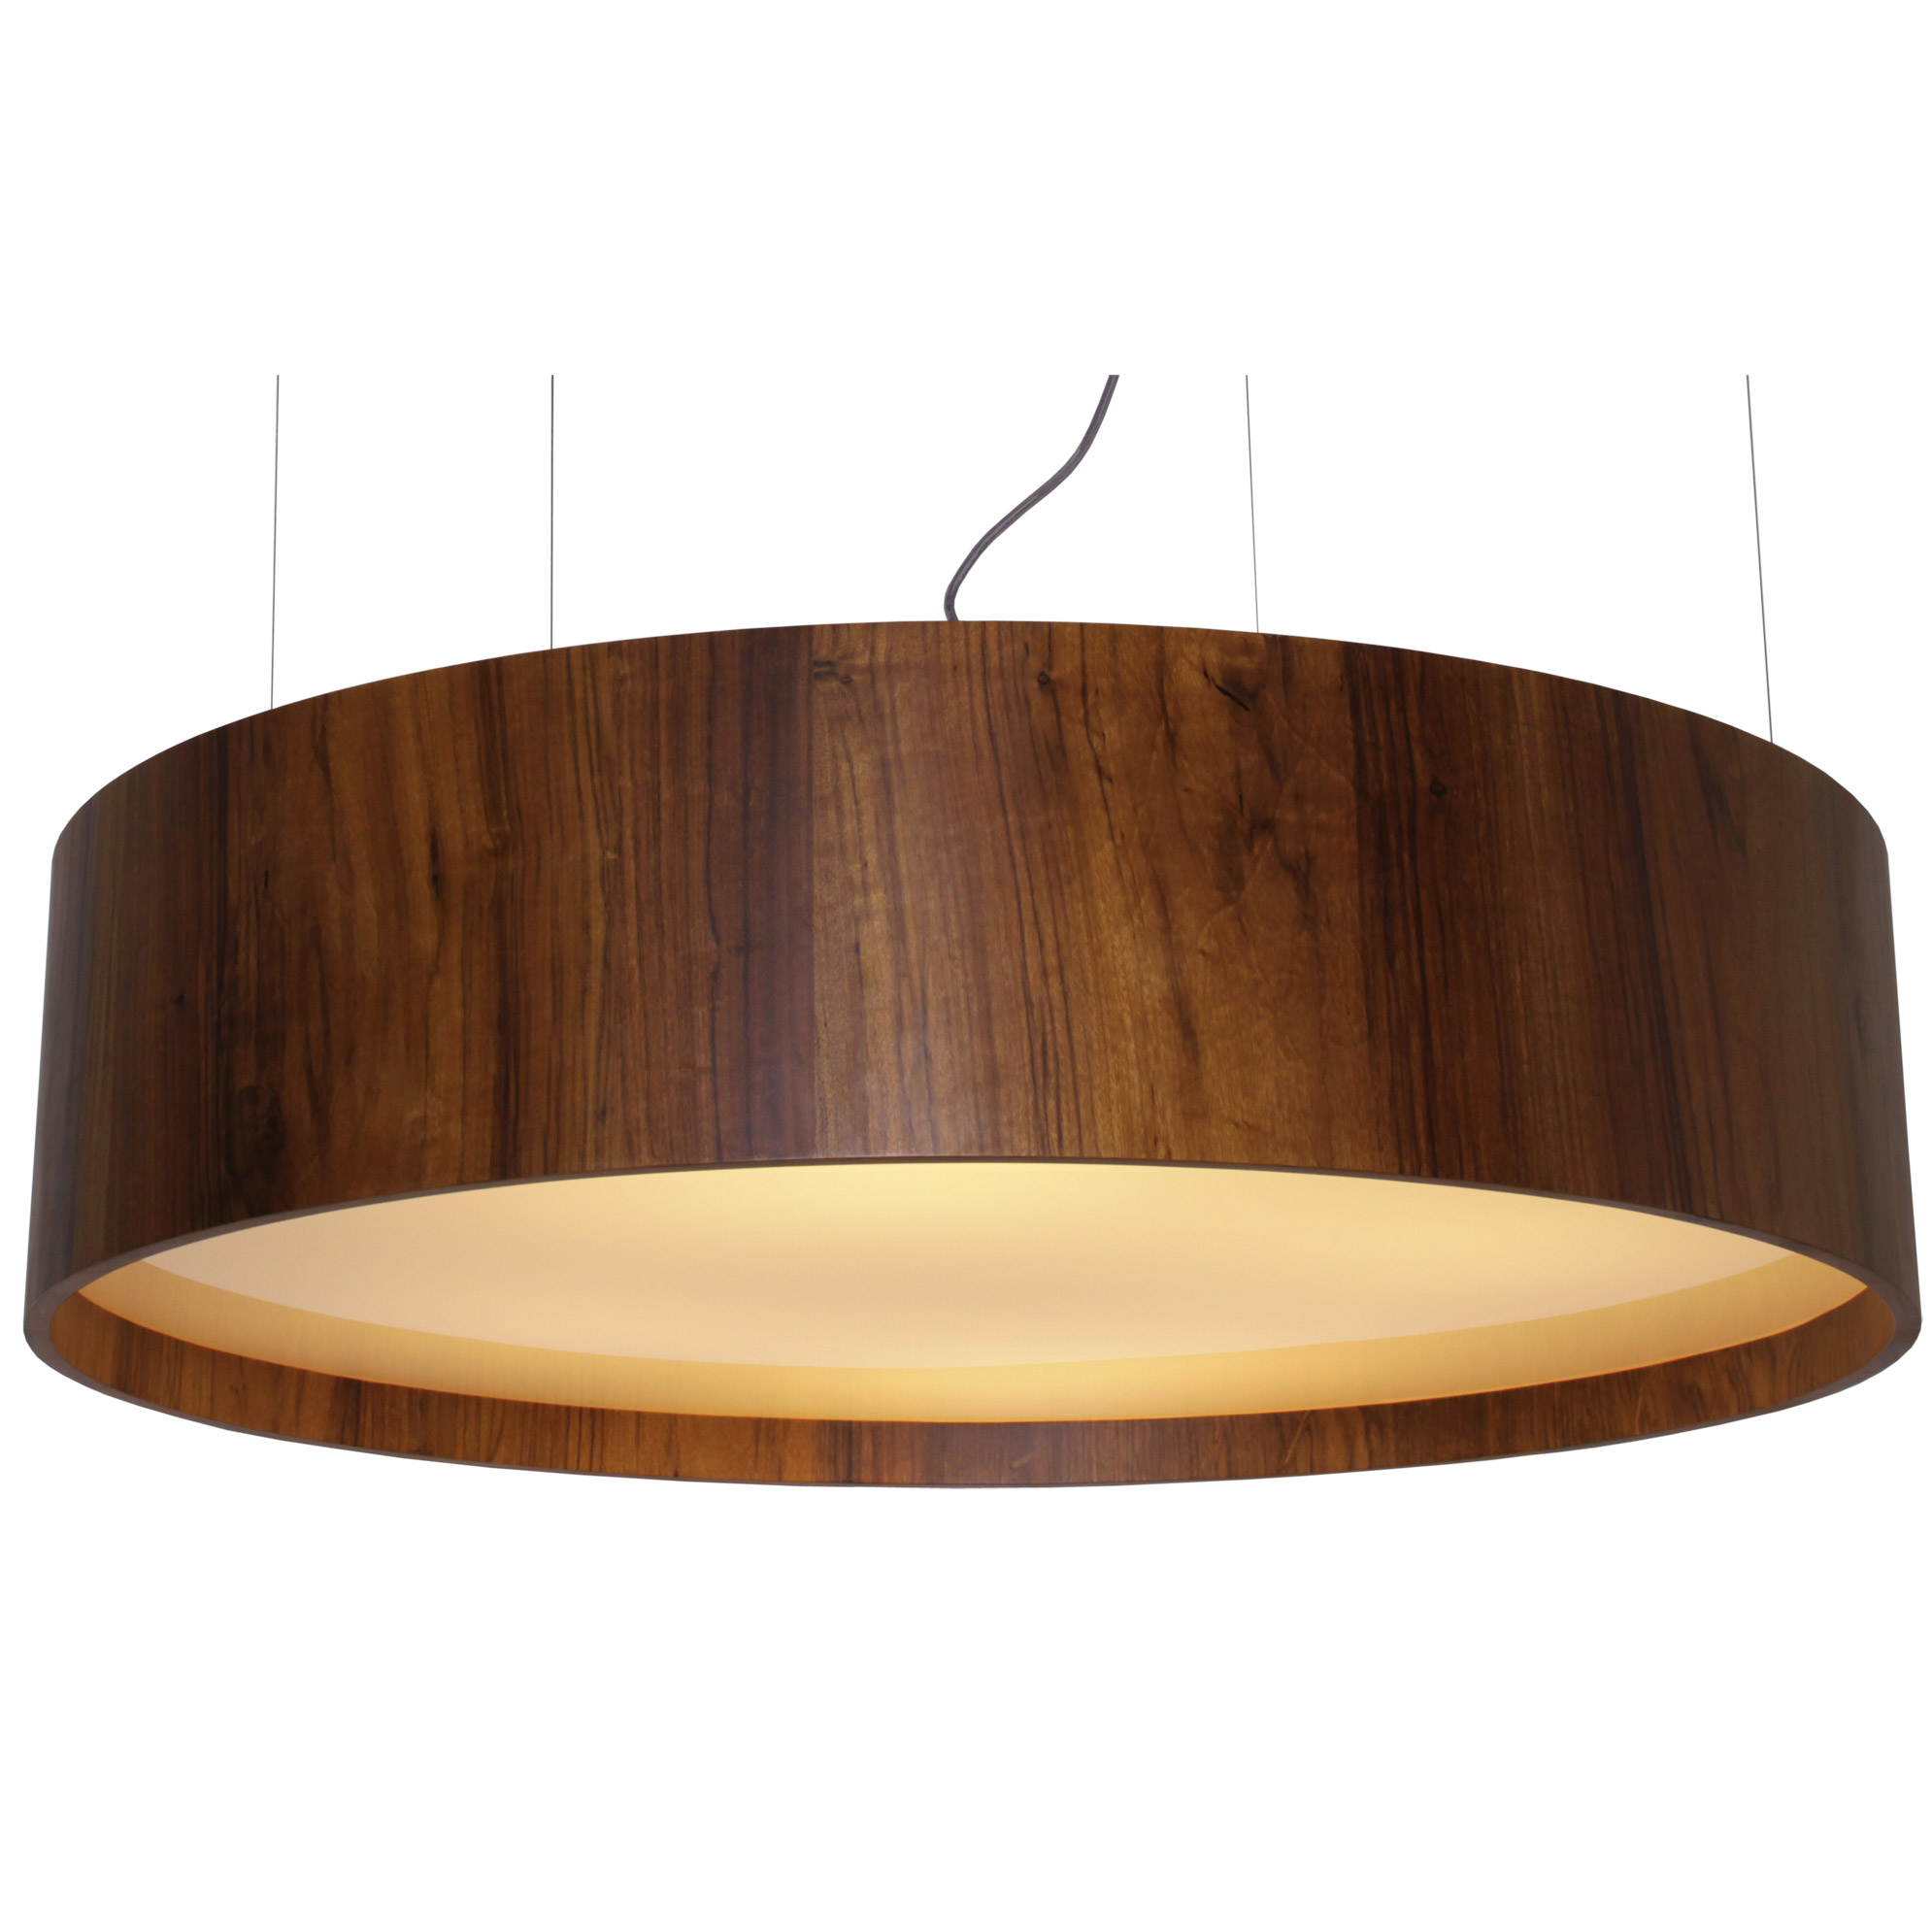 Large Drum Pendant By Accord Iluminacao Lc Ac 207 18